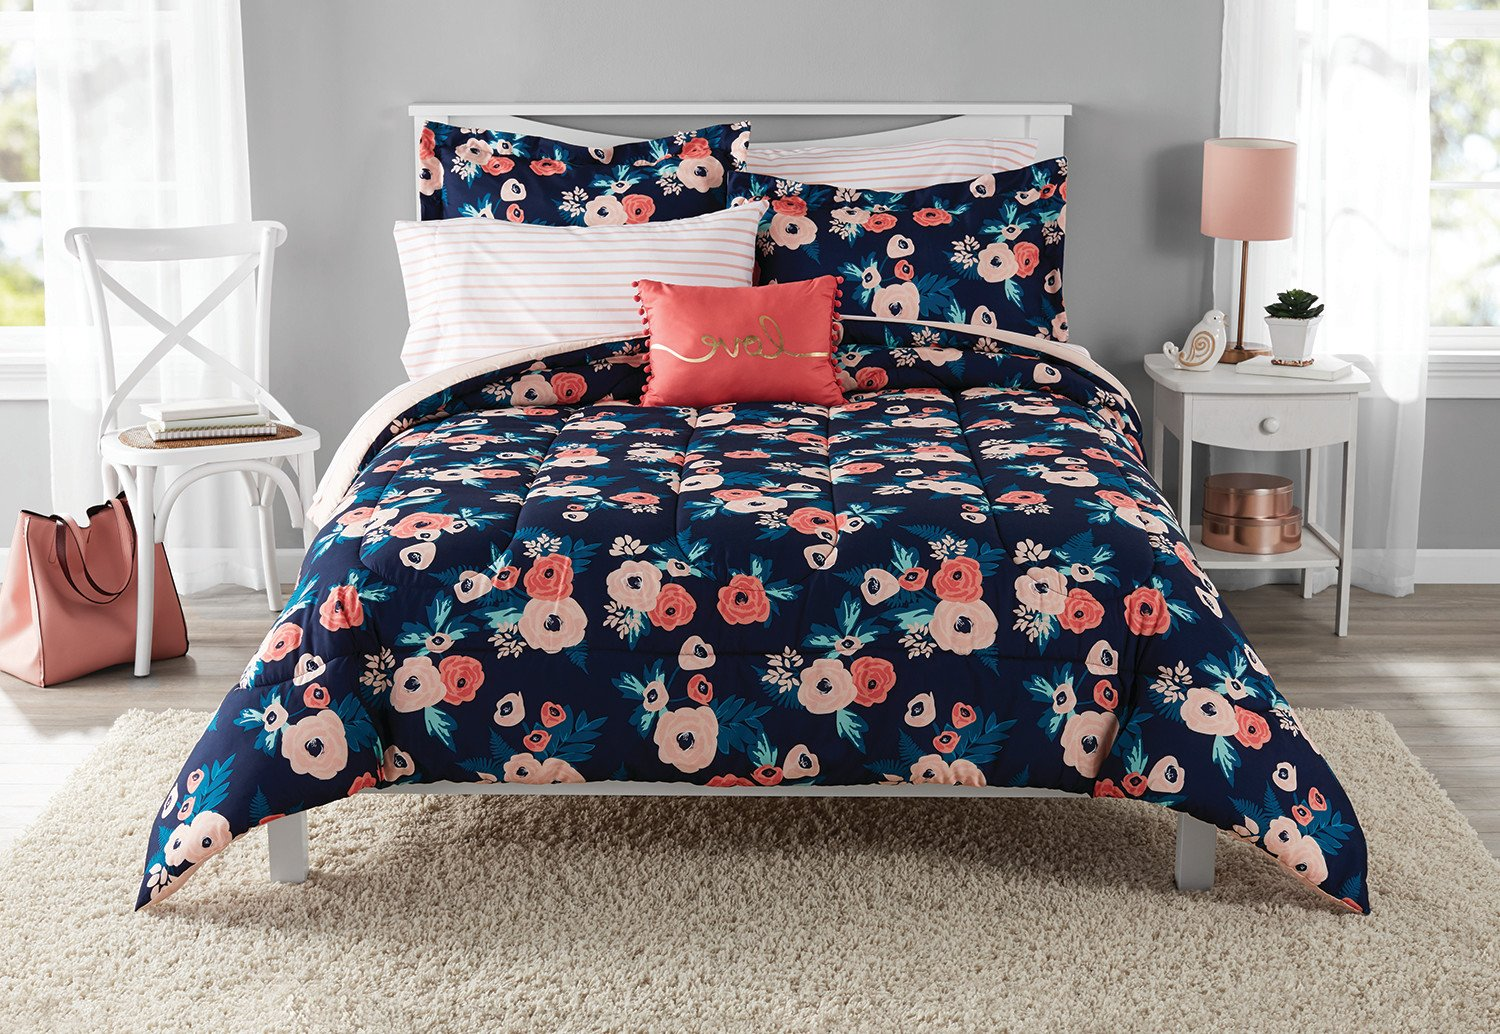 8 Piece Navy Blue Pink Garden Flowers Theme Comforter Queen Set, Elegant All Over Boho Chic Bohemian Floral Print, Stylish Stripes Design Reversible Bedding, Bright Colors Blush Coral, For Girls/Teens